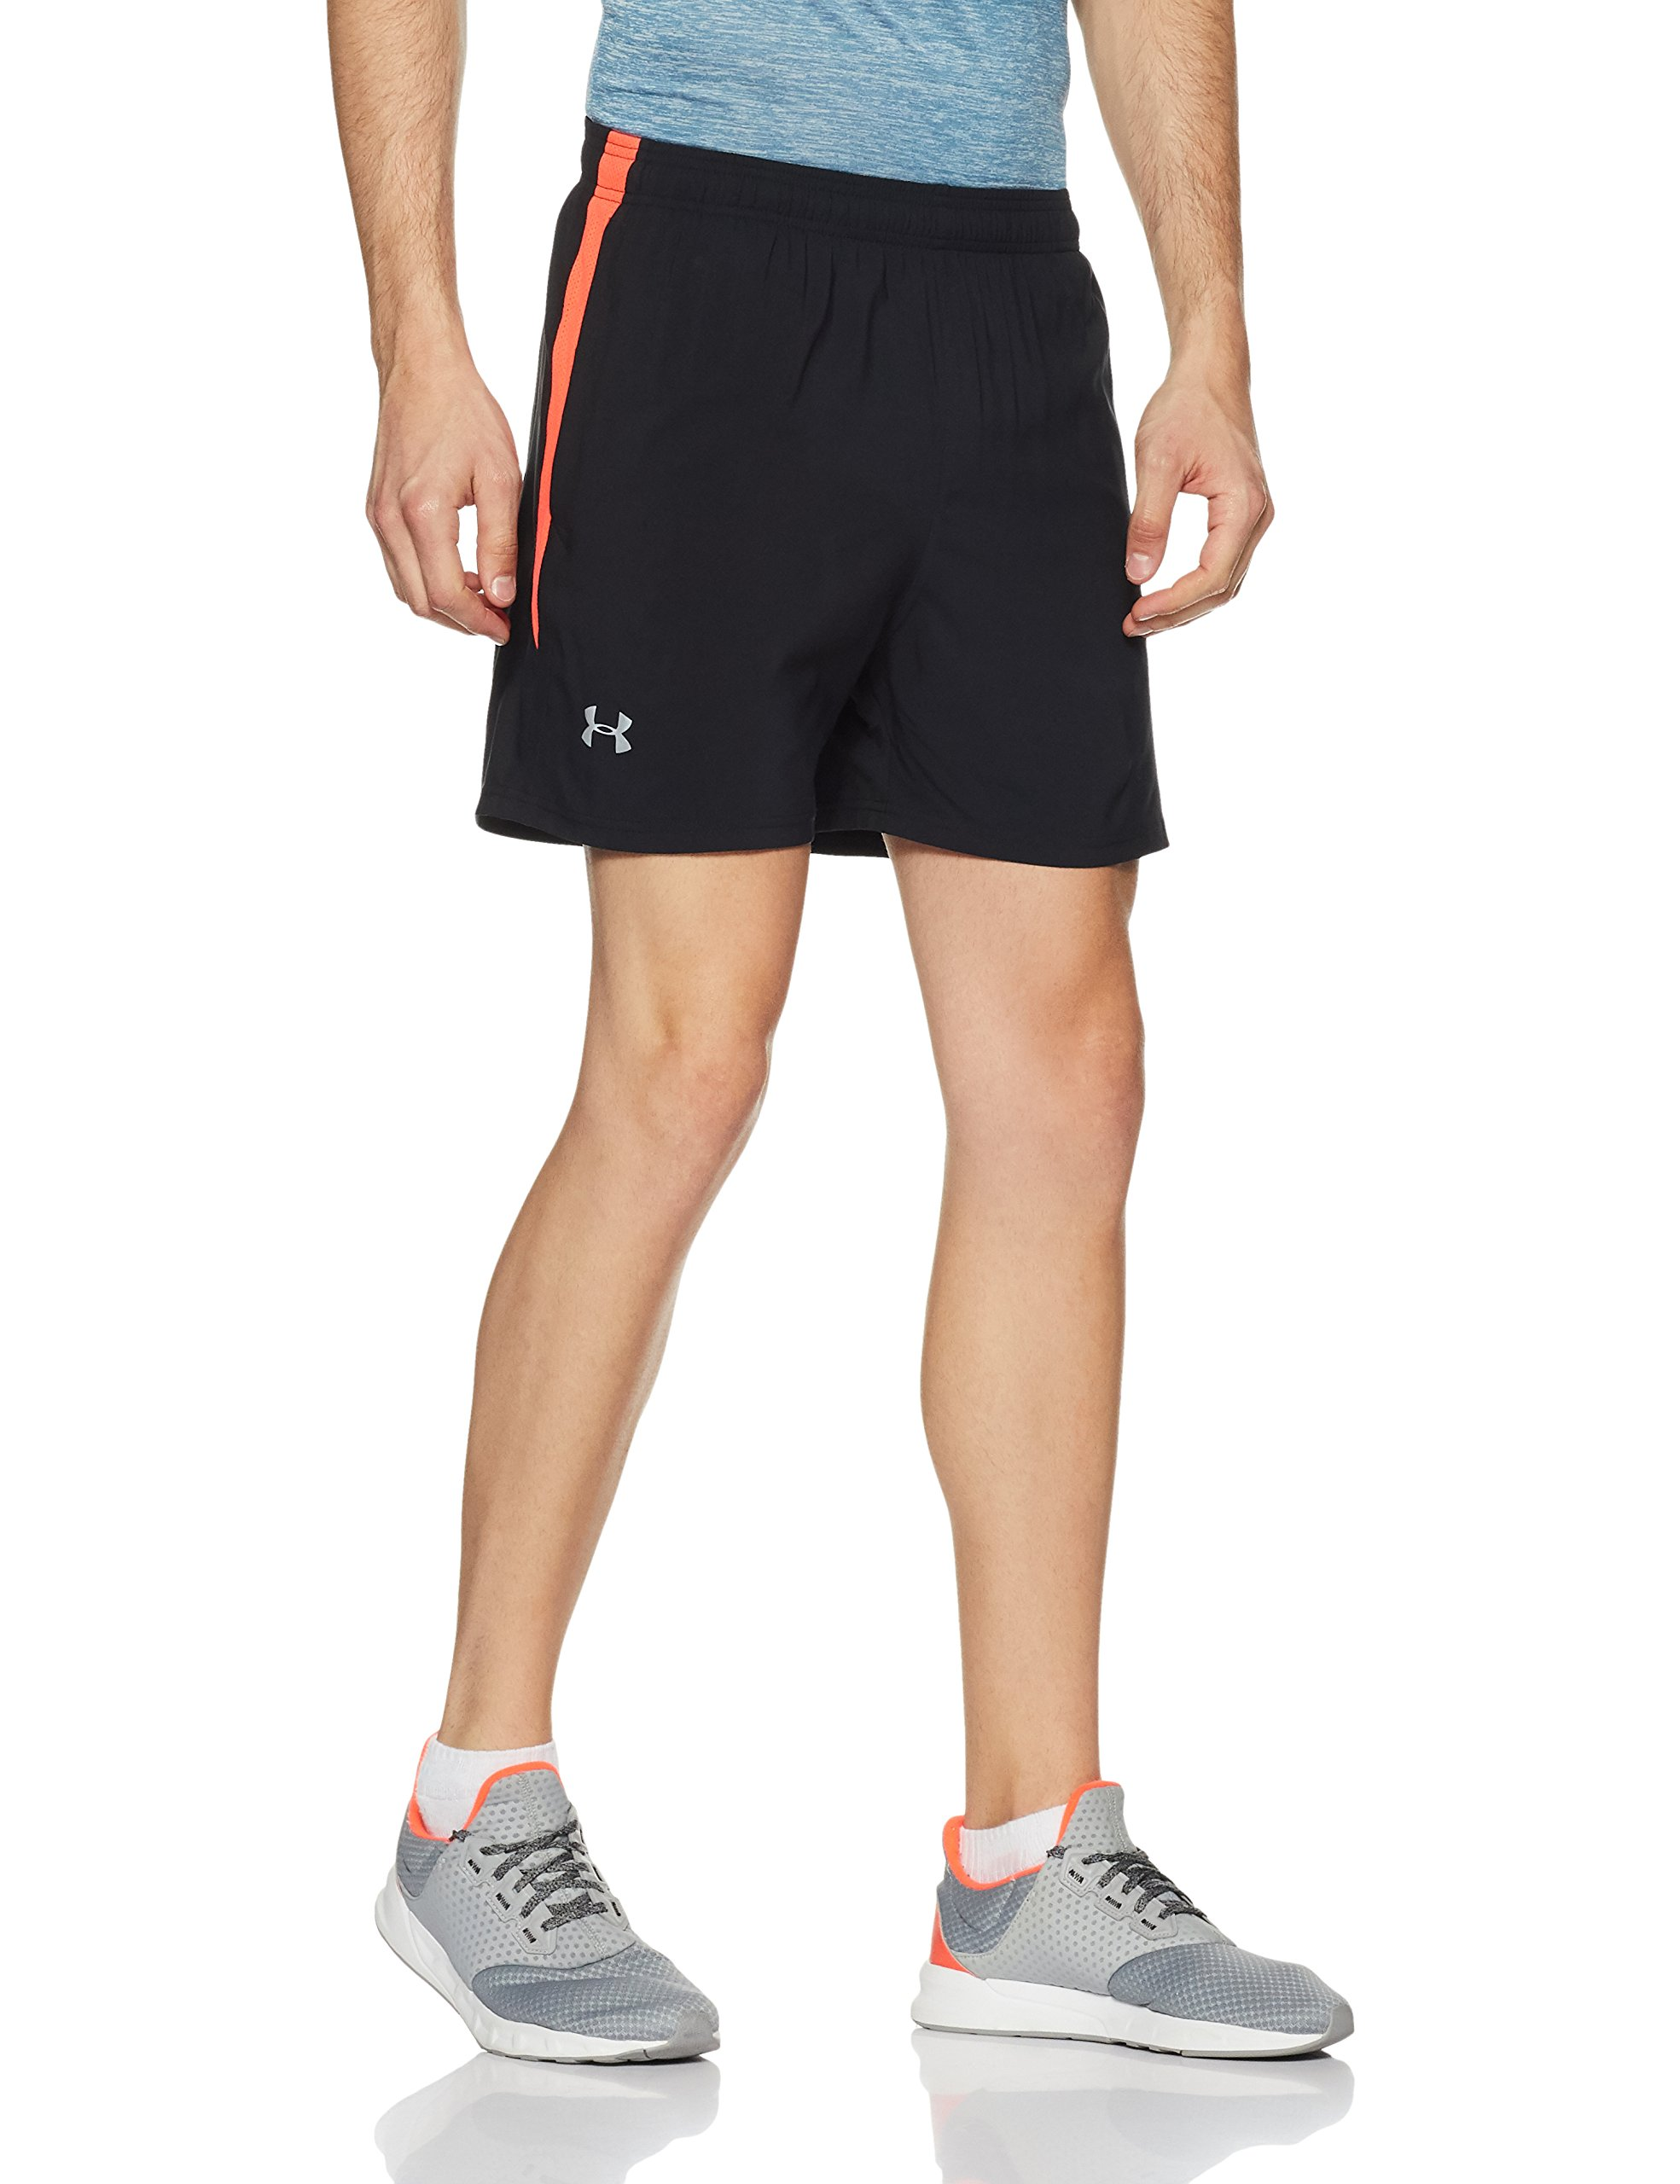 Under Armour Men's Launch 5'' Shorts,Black /Reflective, Small by Under Armour (Image #3)